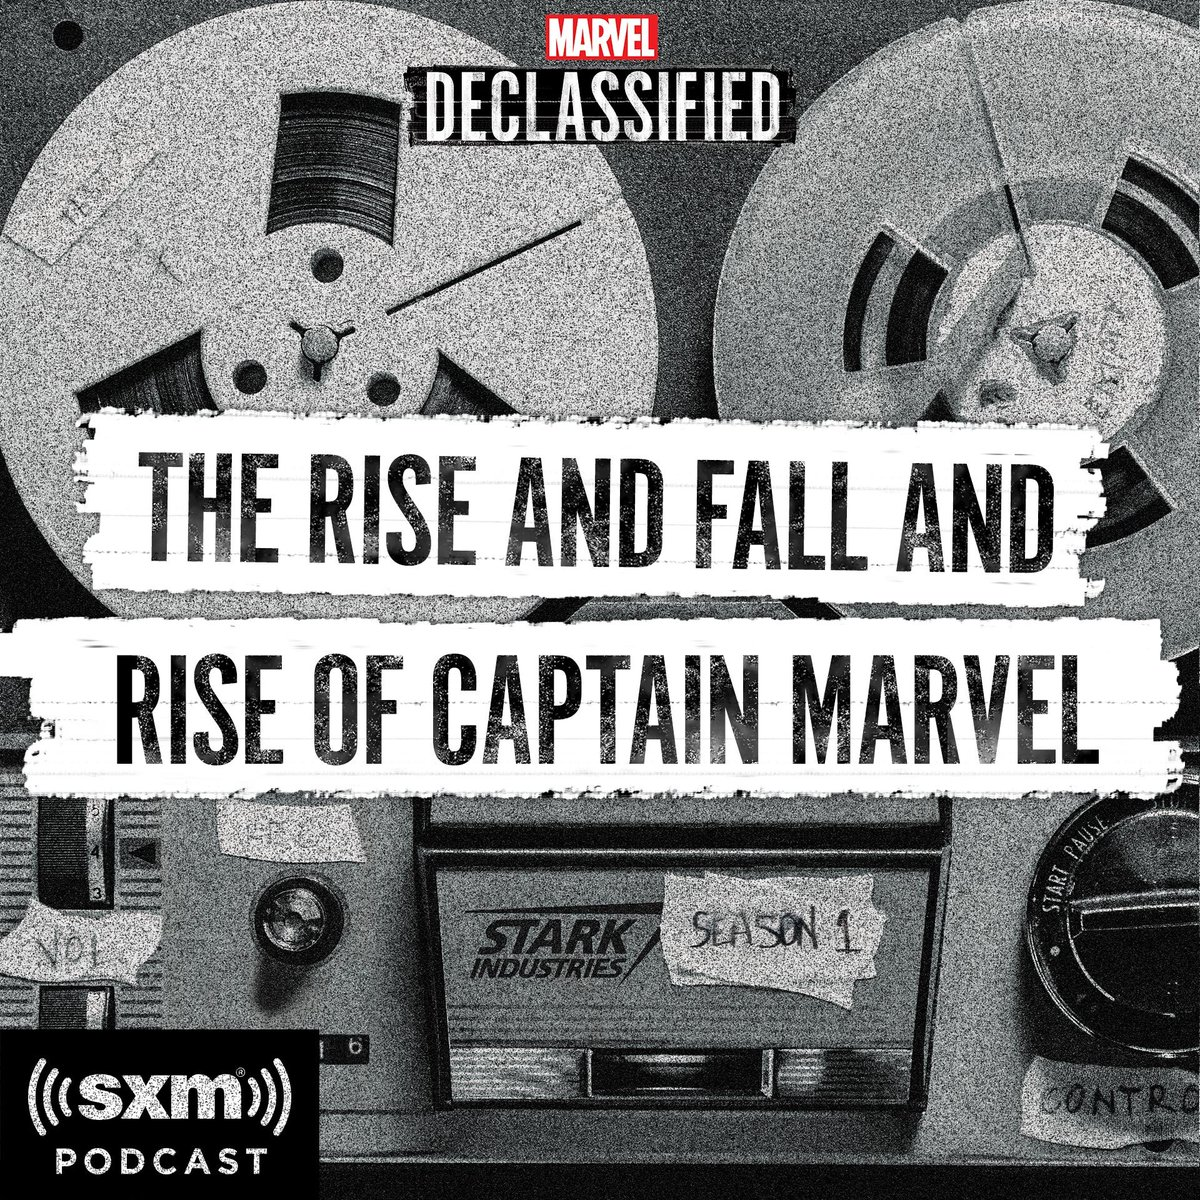 The newest episode of #MarvelsDeclassified is all about the symbolism and history of Carol Danvers/Captain Marvel. (Don't worry, @lorrainecink and I talk about Kamala Khan, too!) Great interviews with @kellysue, @gerryconway, @MiniB622